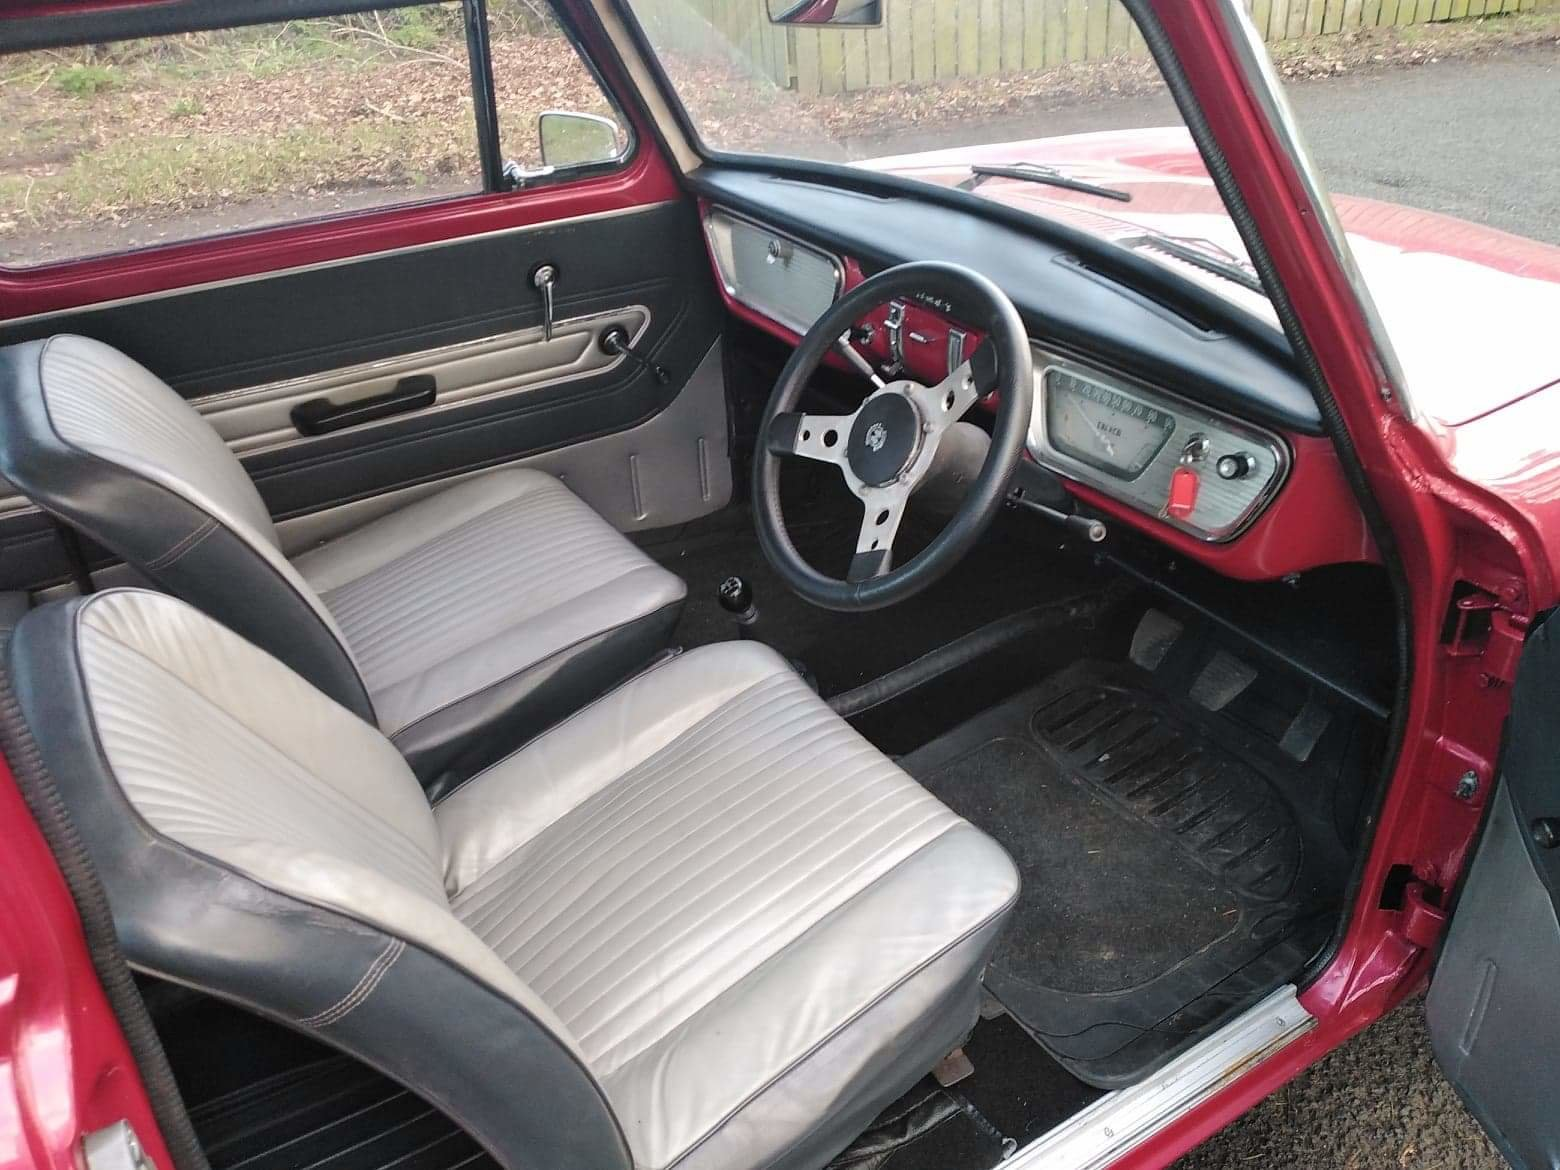 1964 Ford anglia For Sale (picture 4 of 4)